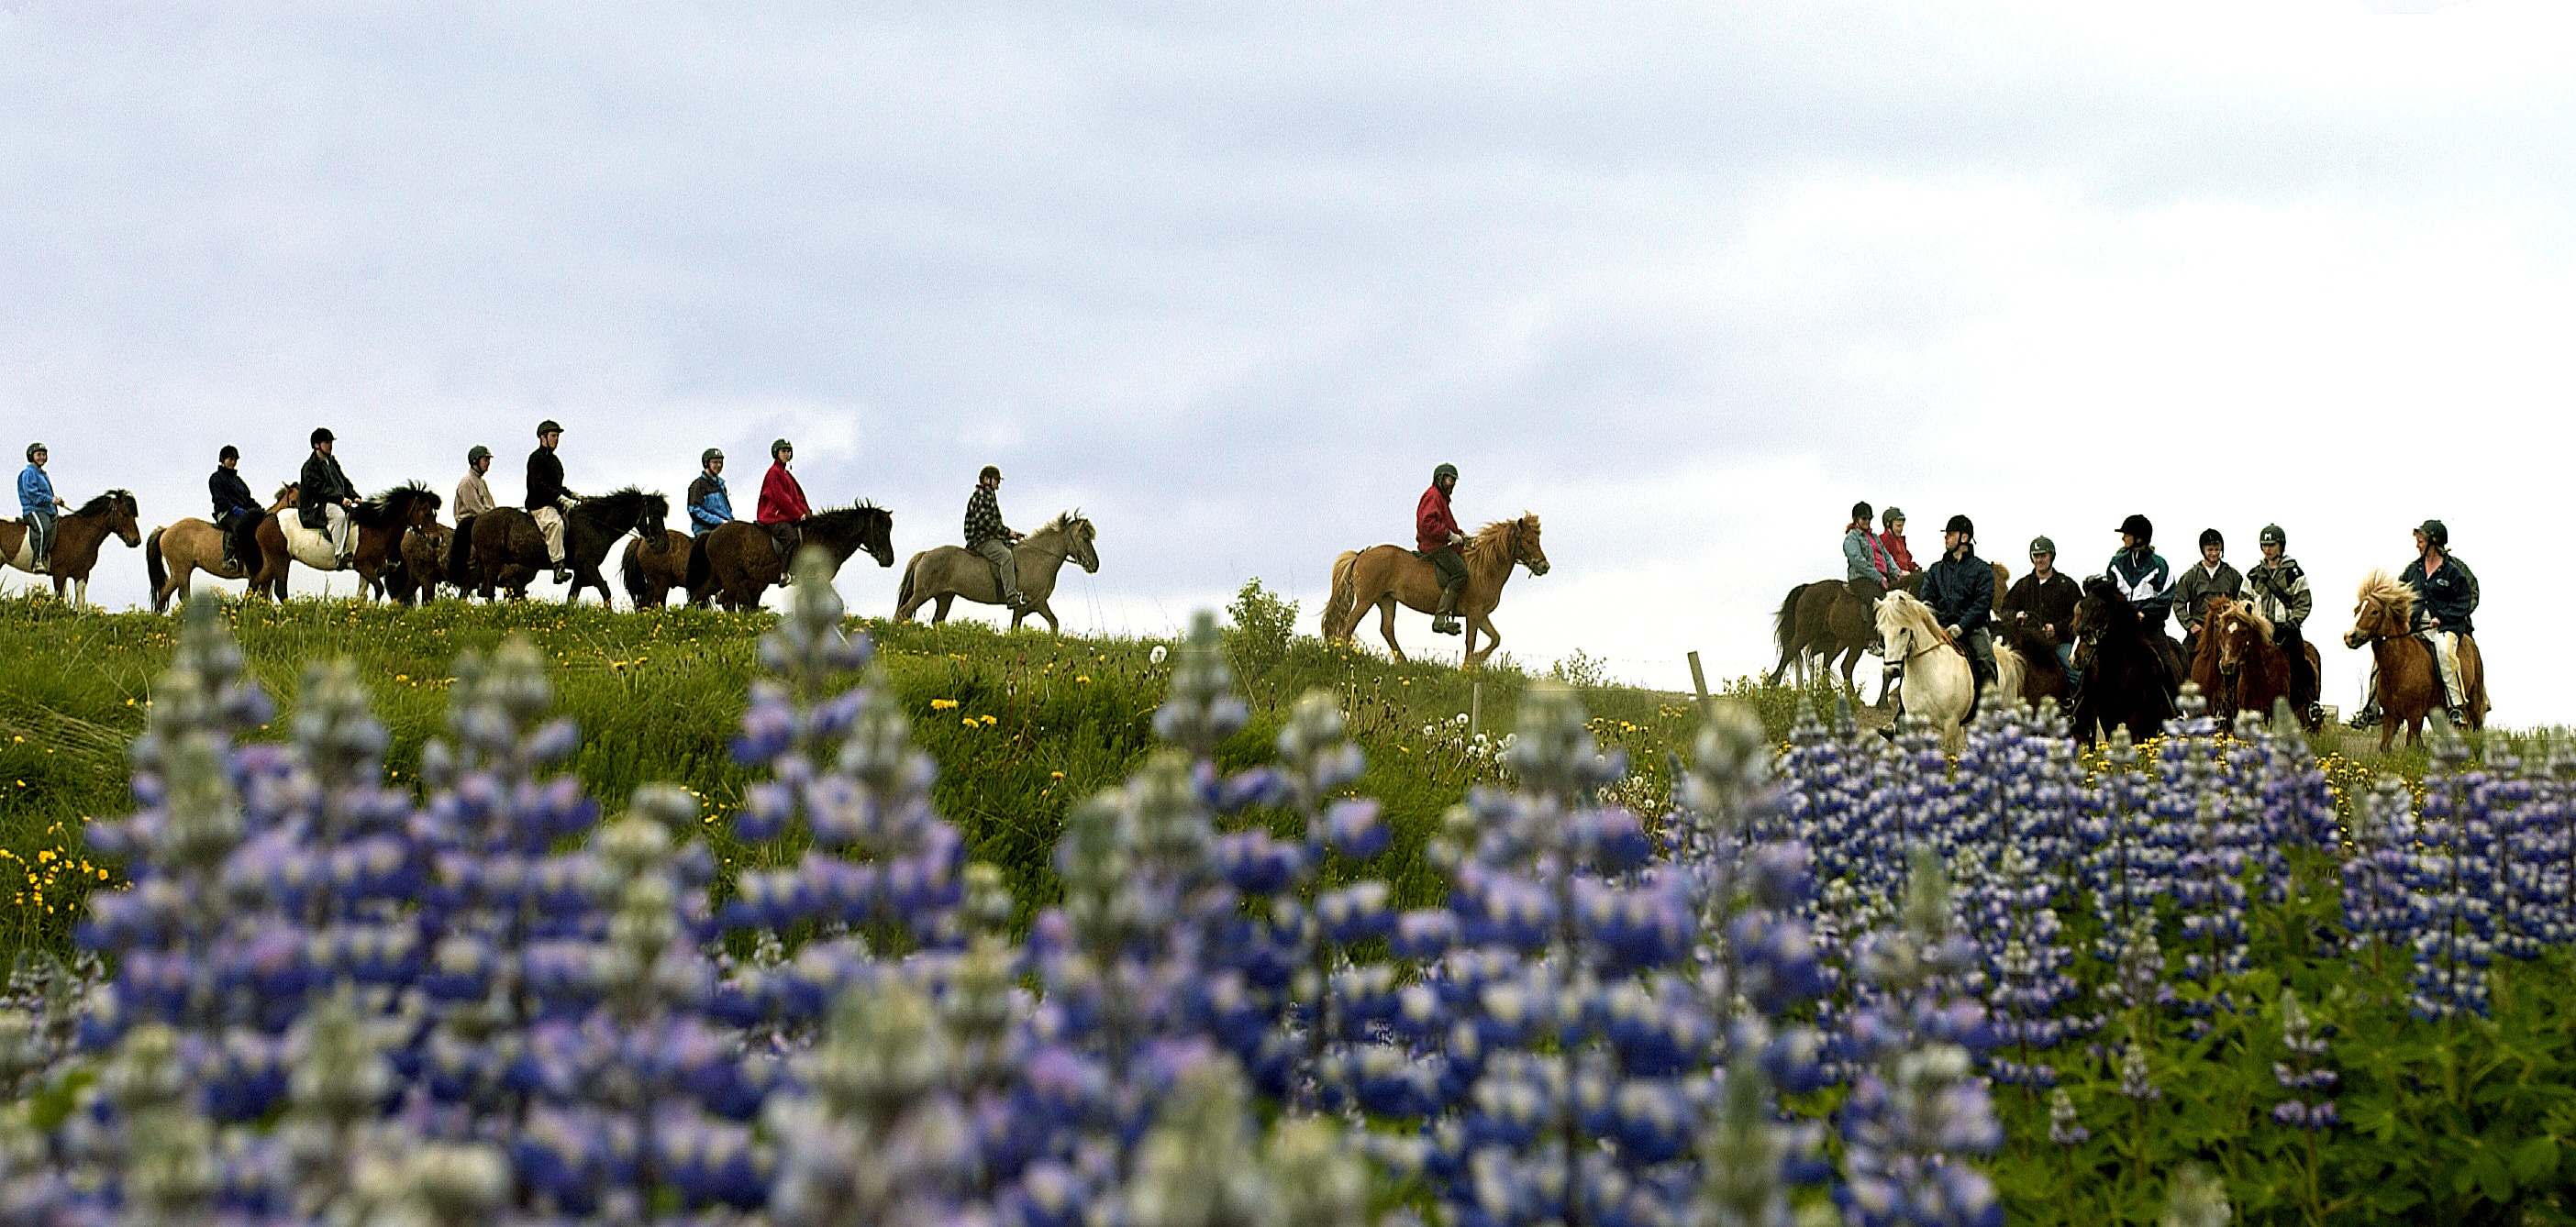 Lupins are a common sight across Iceland in summer.